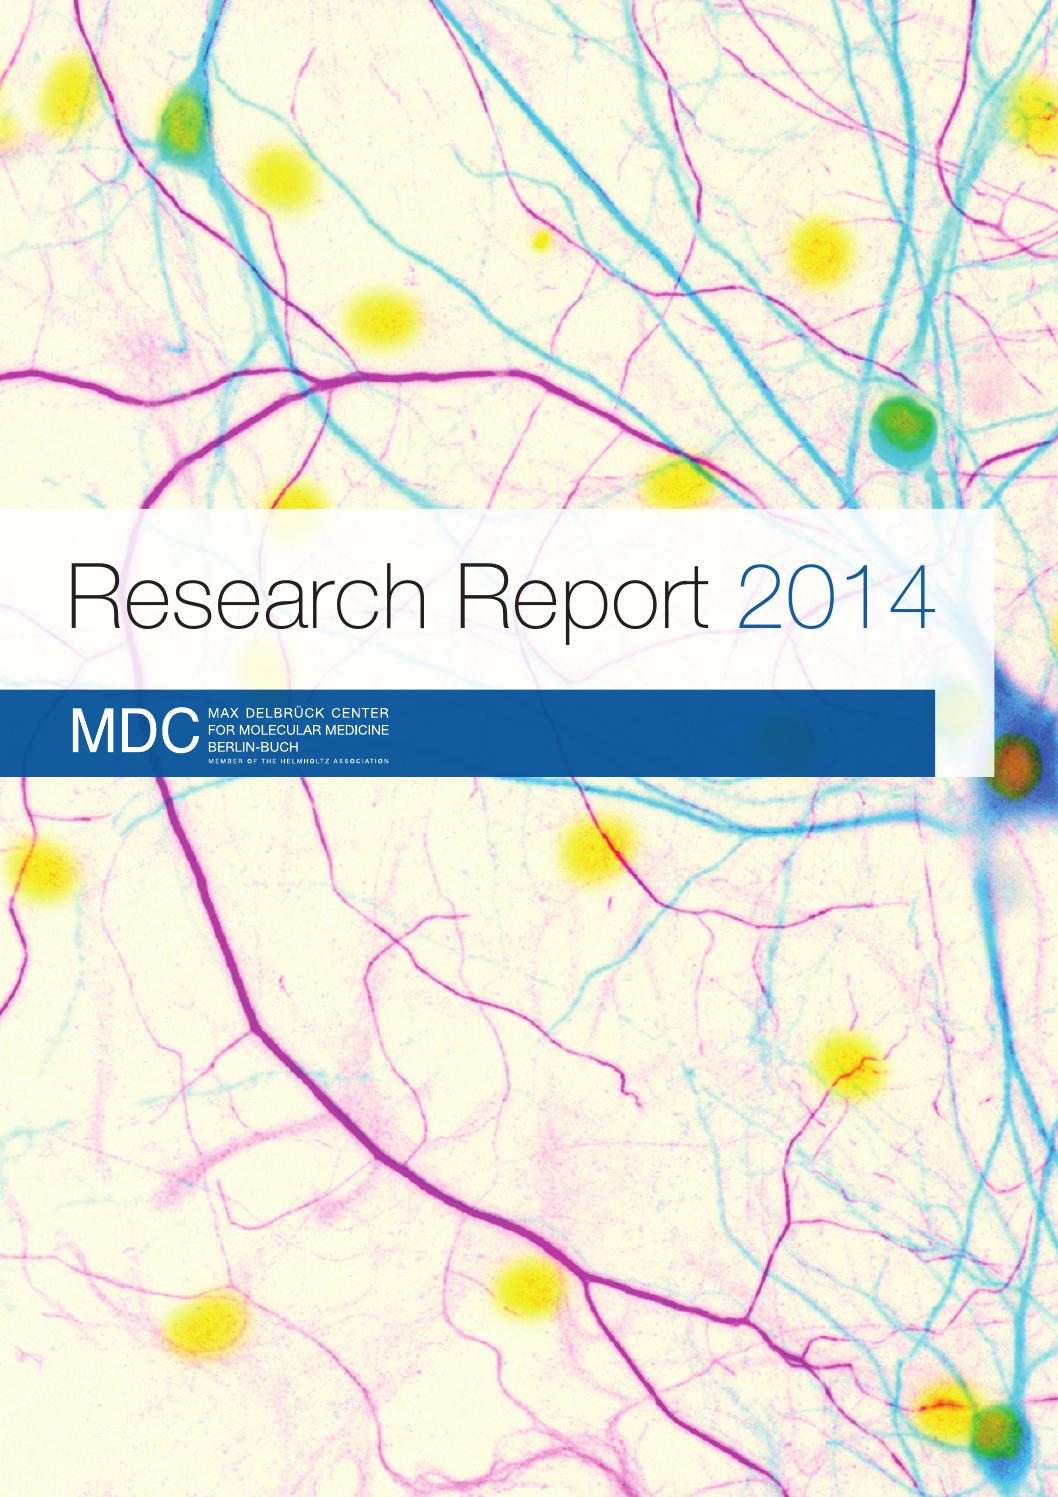 Mdc Research Report 2014 By Max Delbrück Center For Molecular Medicine Issuu